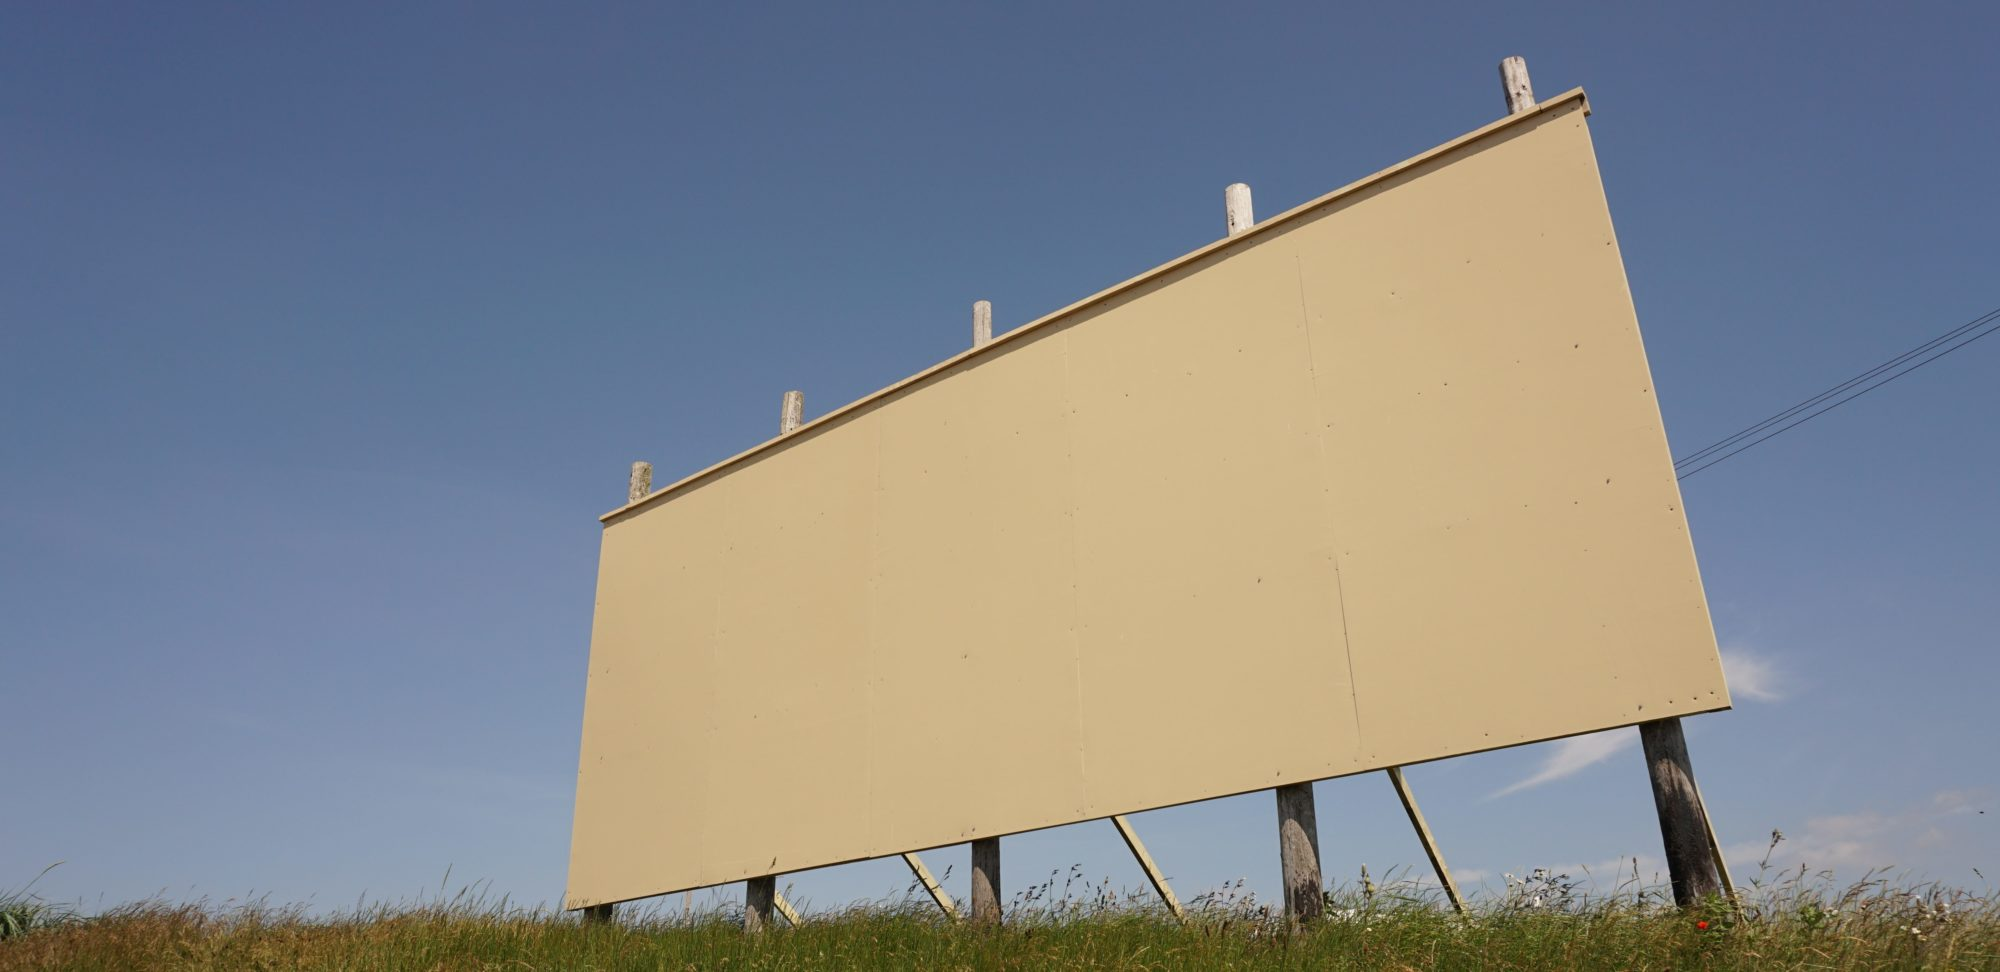 A blank billboard in Southport, UK